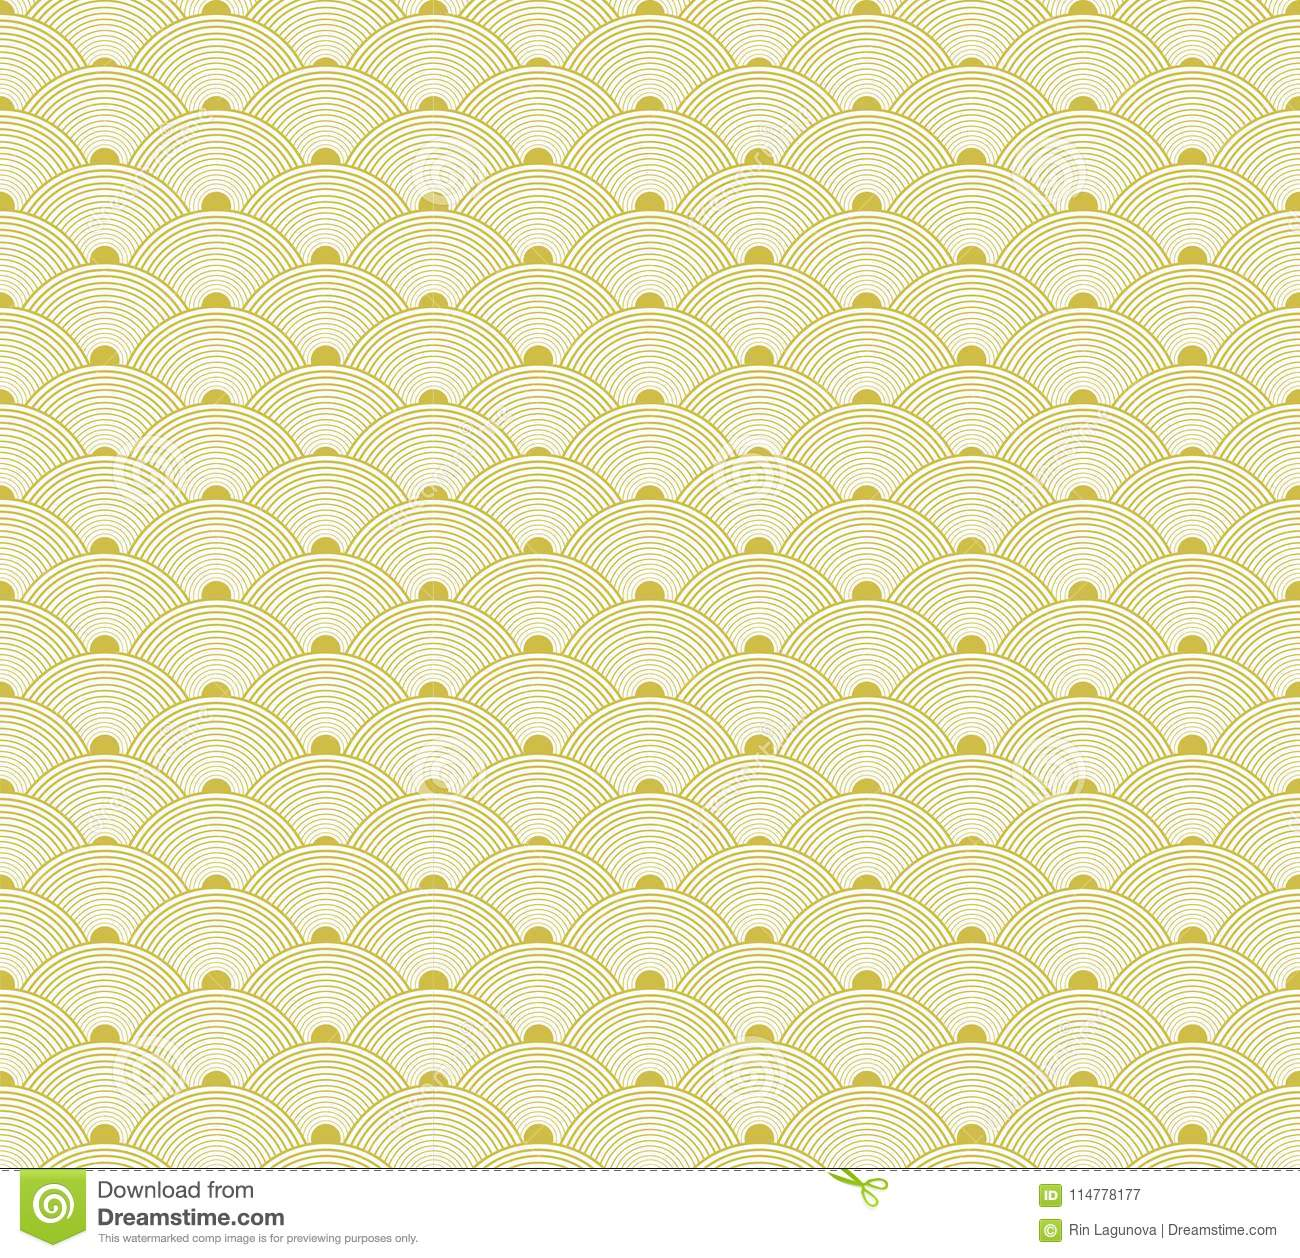 Japanese Golden Seamless Pattern, VECTOR Background, Traditional Asia Background.